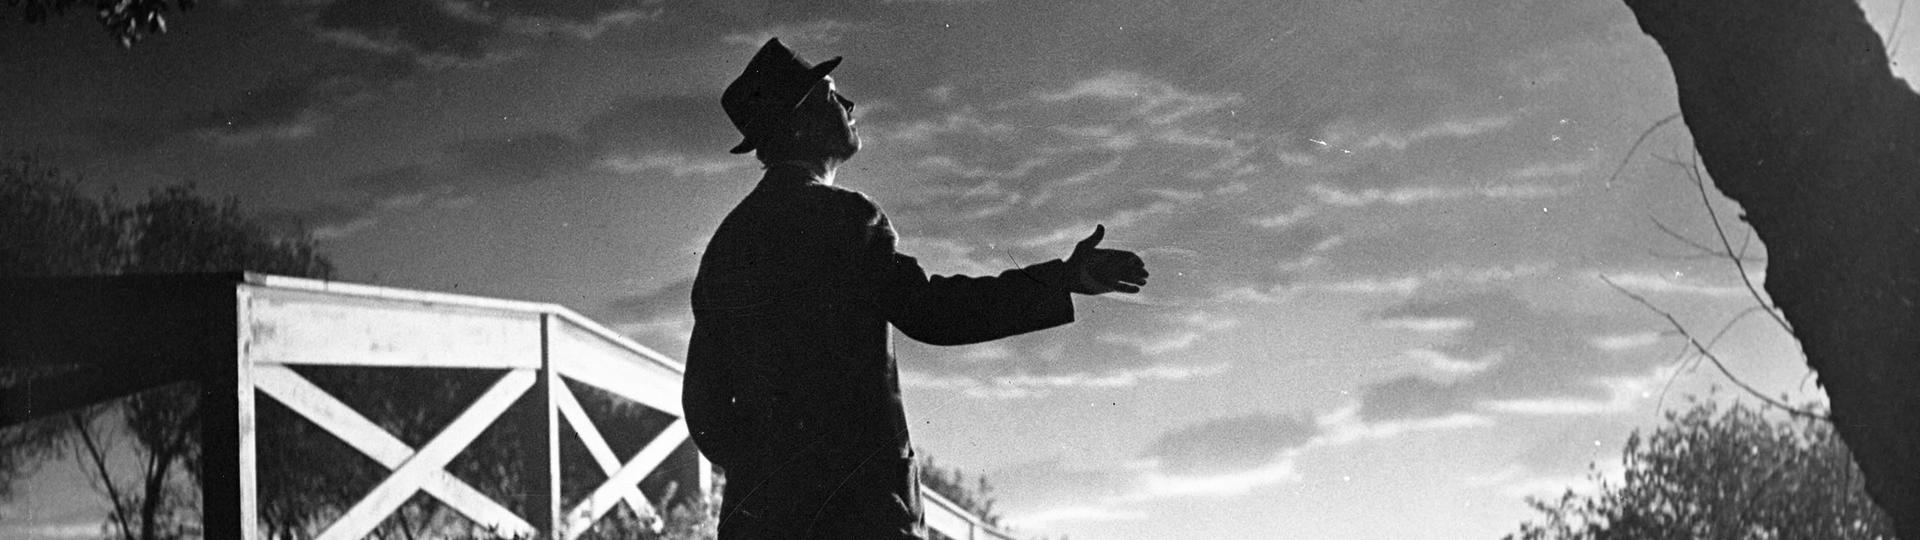 Silhouette of James Stewart against backlit sky from the move Harvey